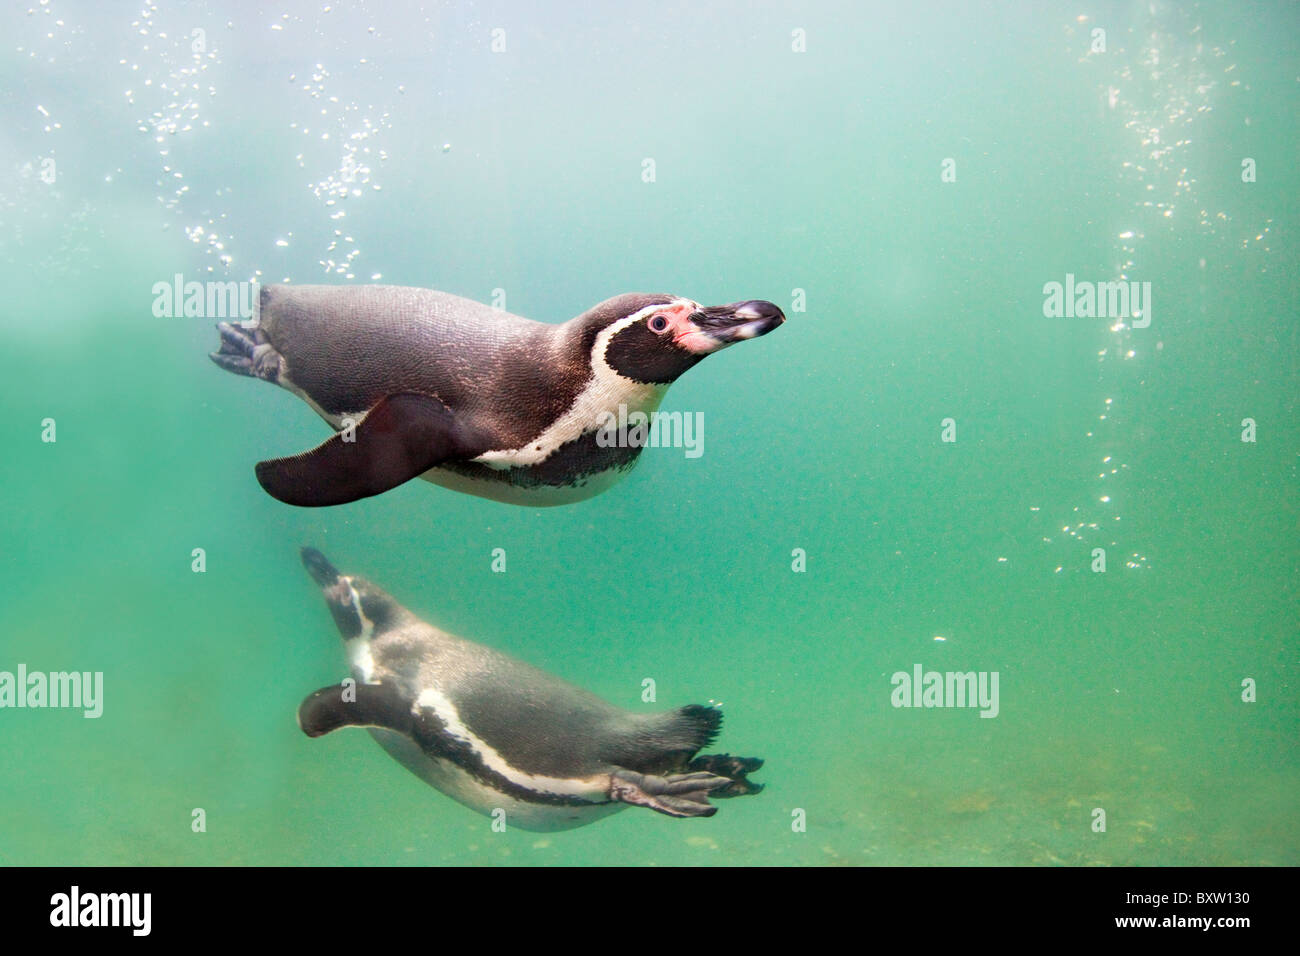 Humboldt Penguins; Spheniscus humboldti; in a pool at the National Seal Sanctuary; Cornwall - Stock Image